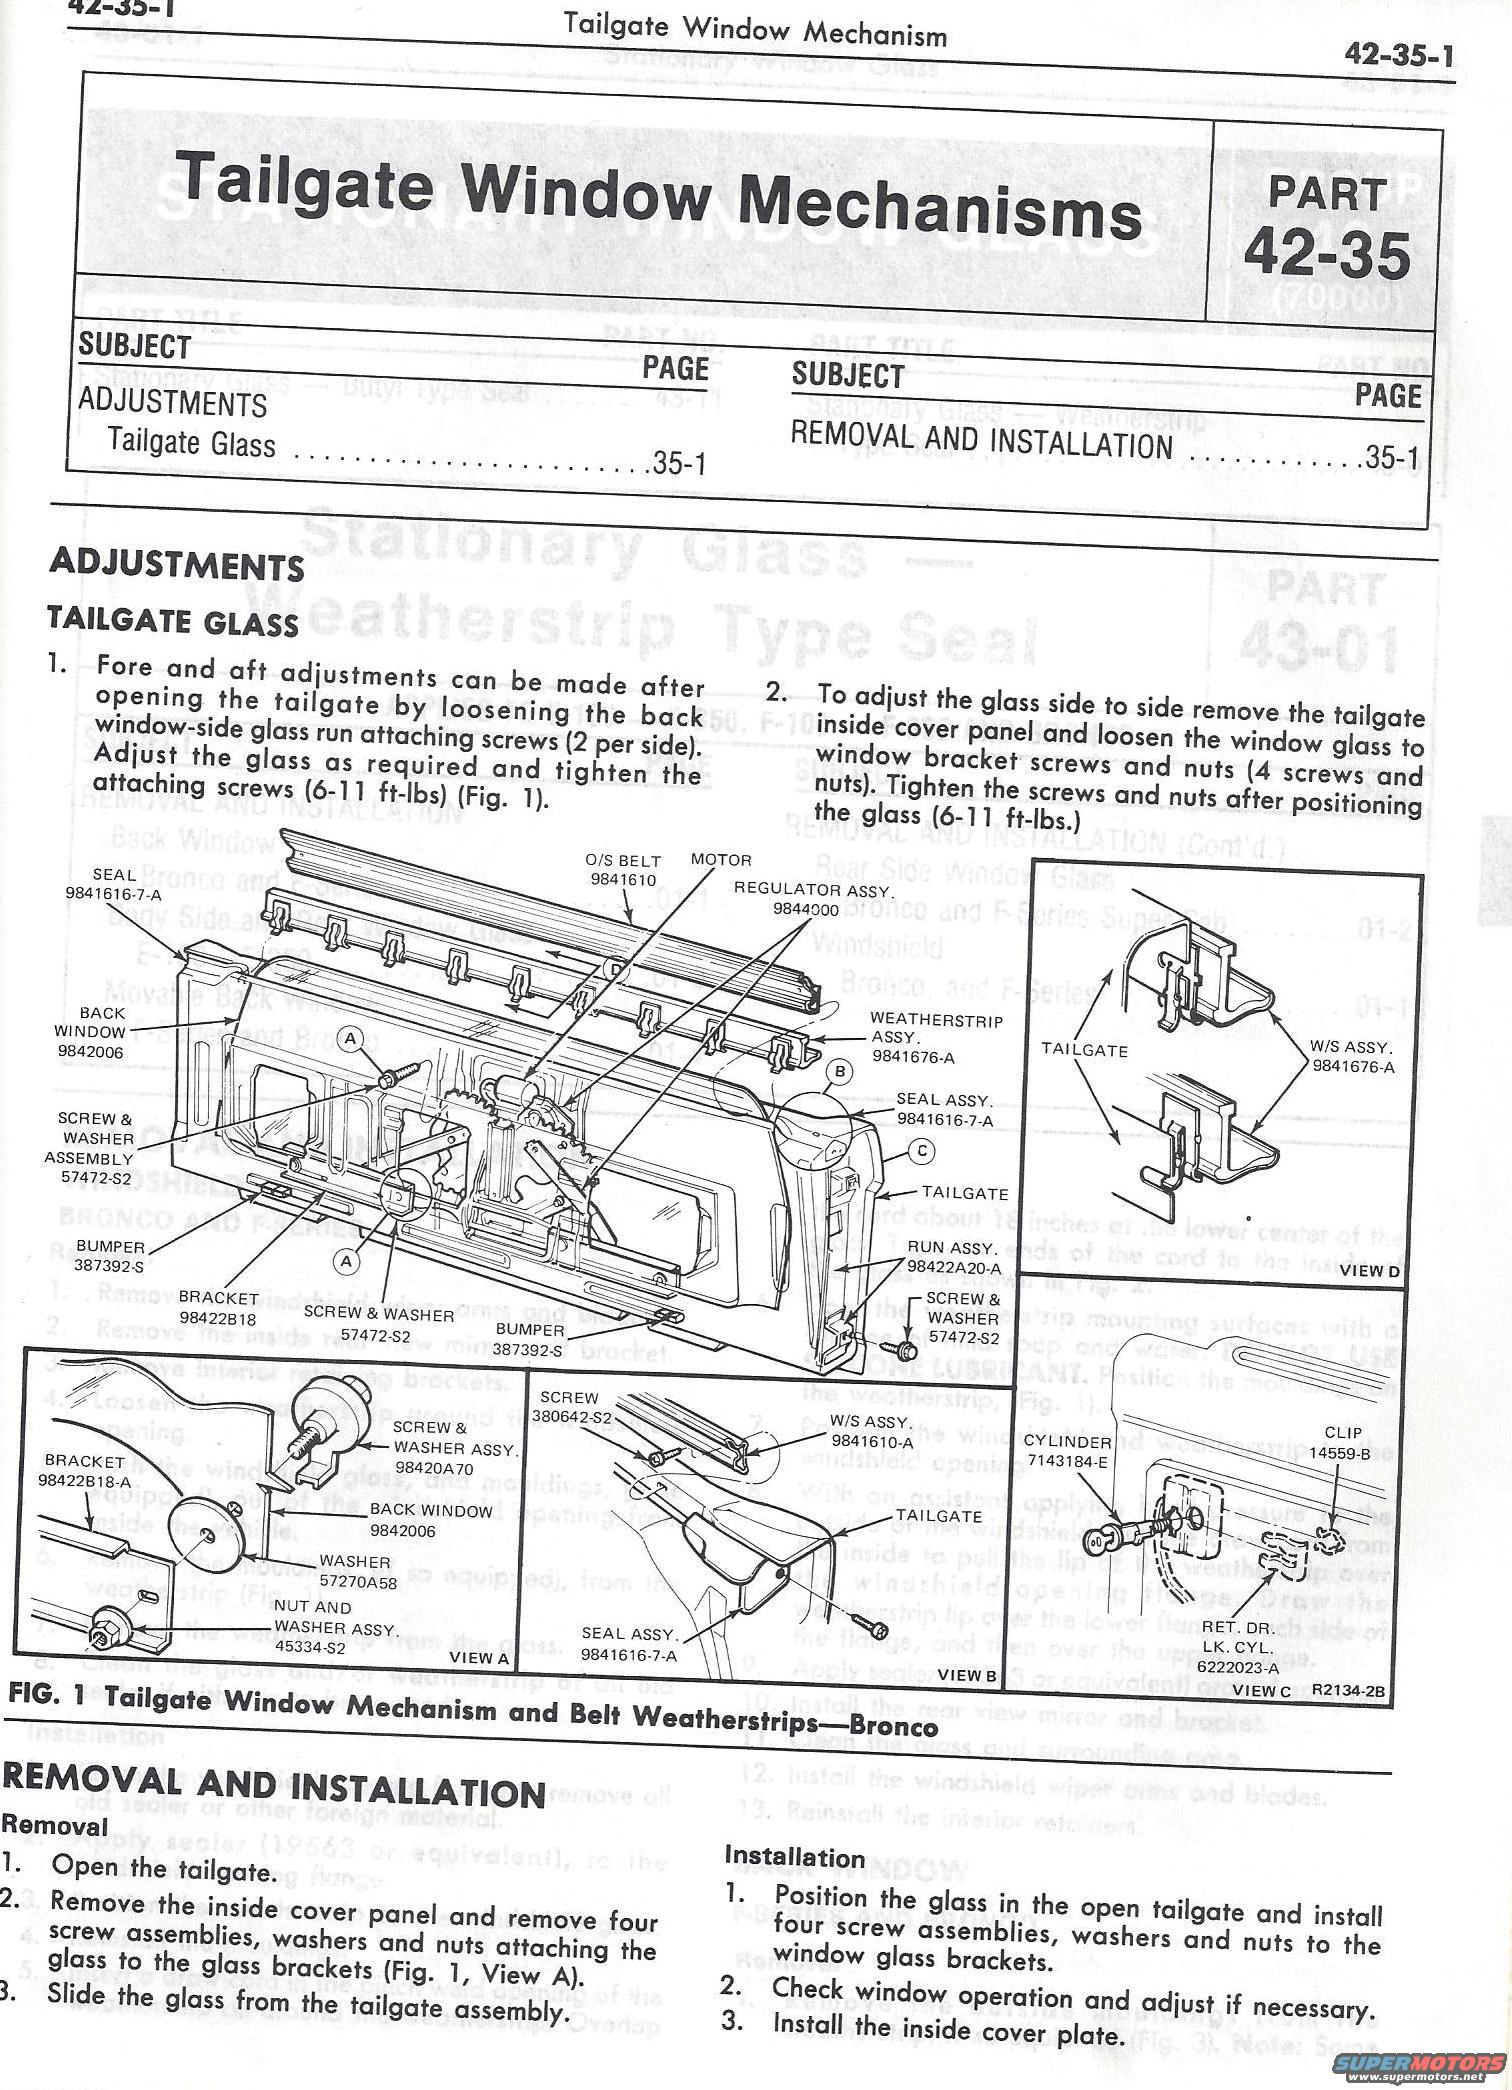 95 Mercury Tracer Wiring Diagram together with 2002 Triumph Daytona Engine also 1991 Mercury Tracer Fuse Box in addition 2002 Triumph Daytona Engine further 1994 Mercury Tracer Fuse Box. on inertia switch location 97 mercury tracer